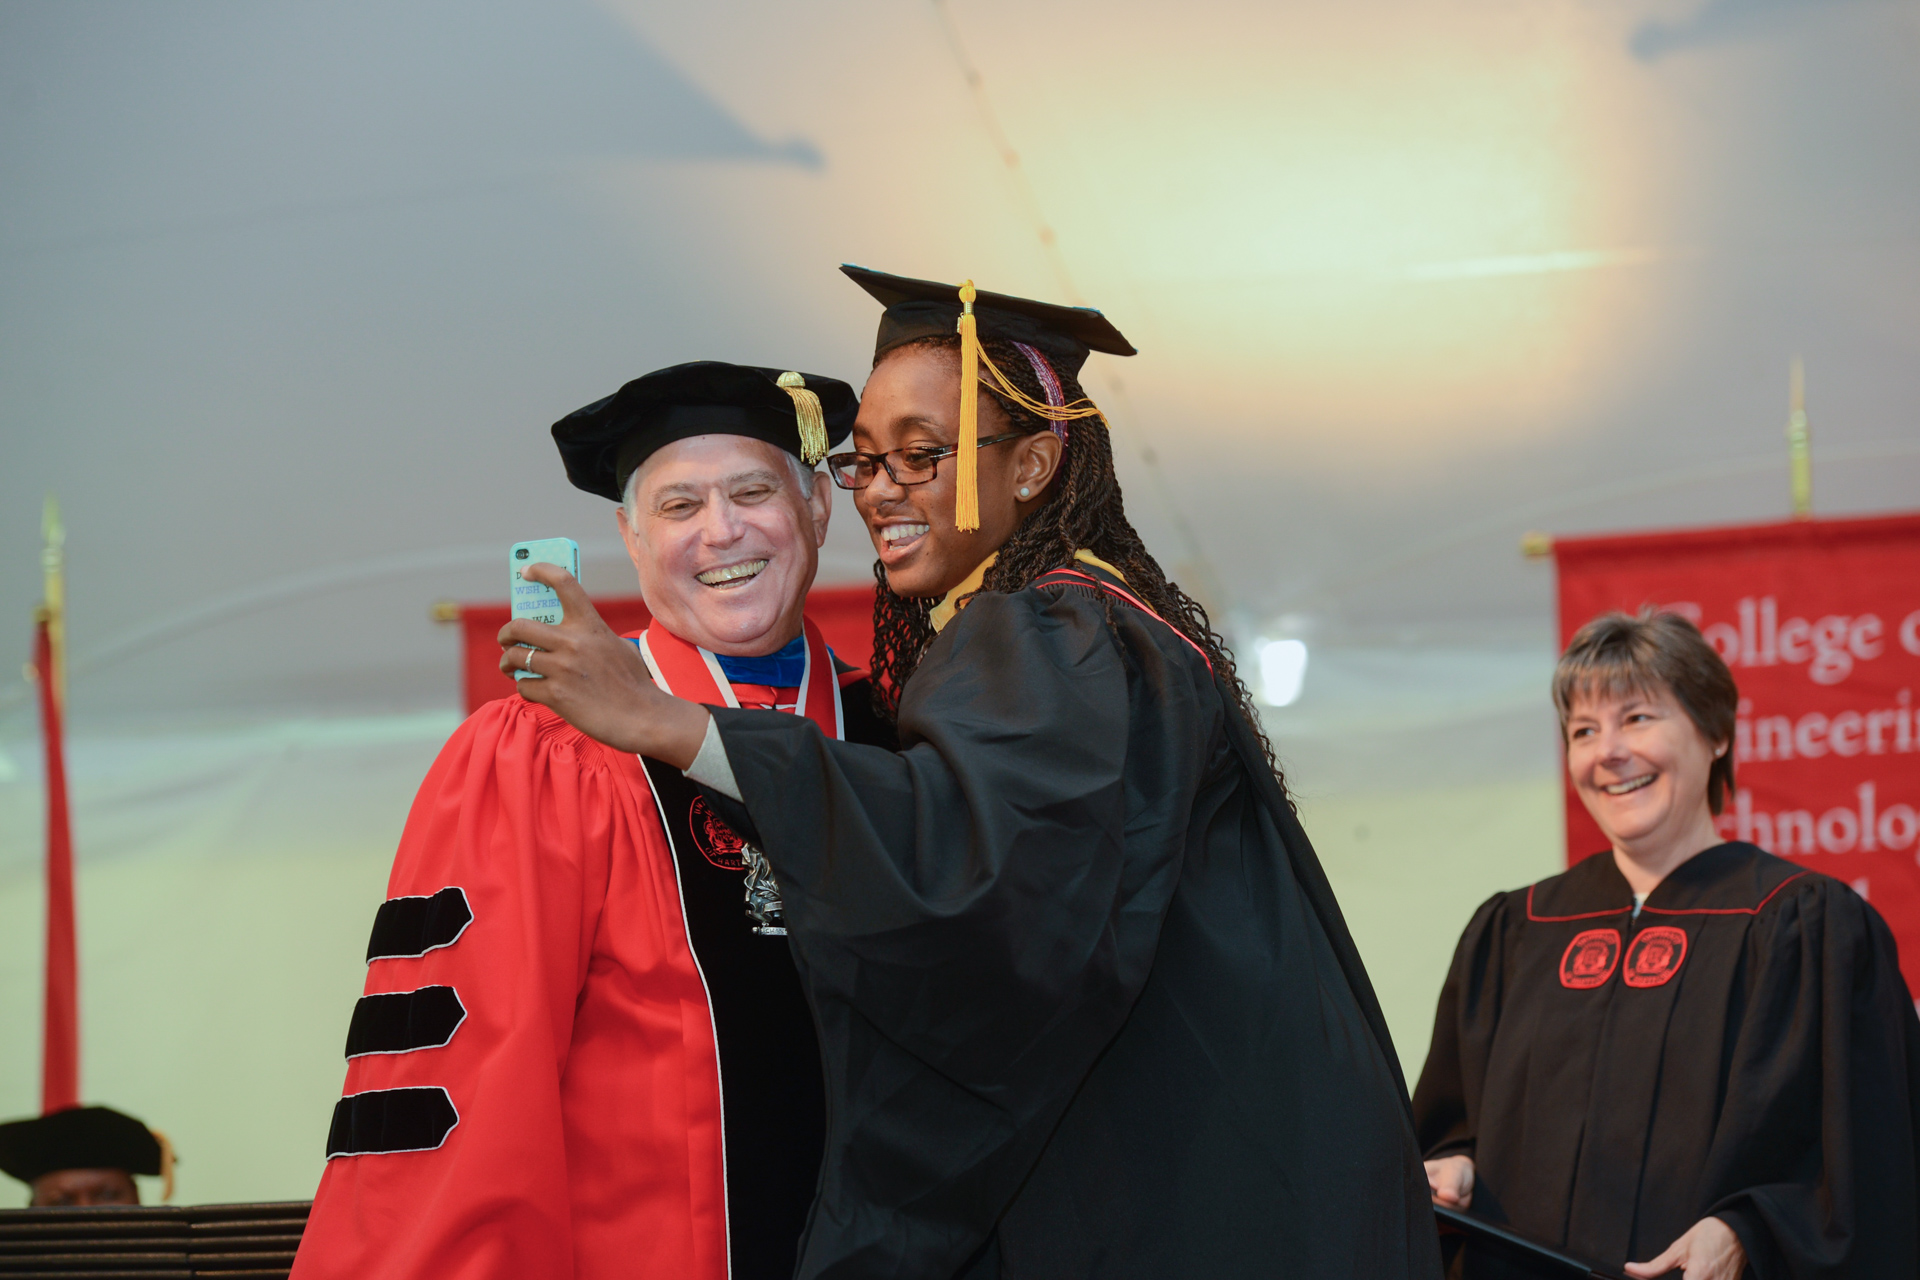 Commencement snapshot with the President